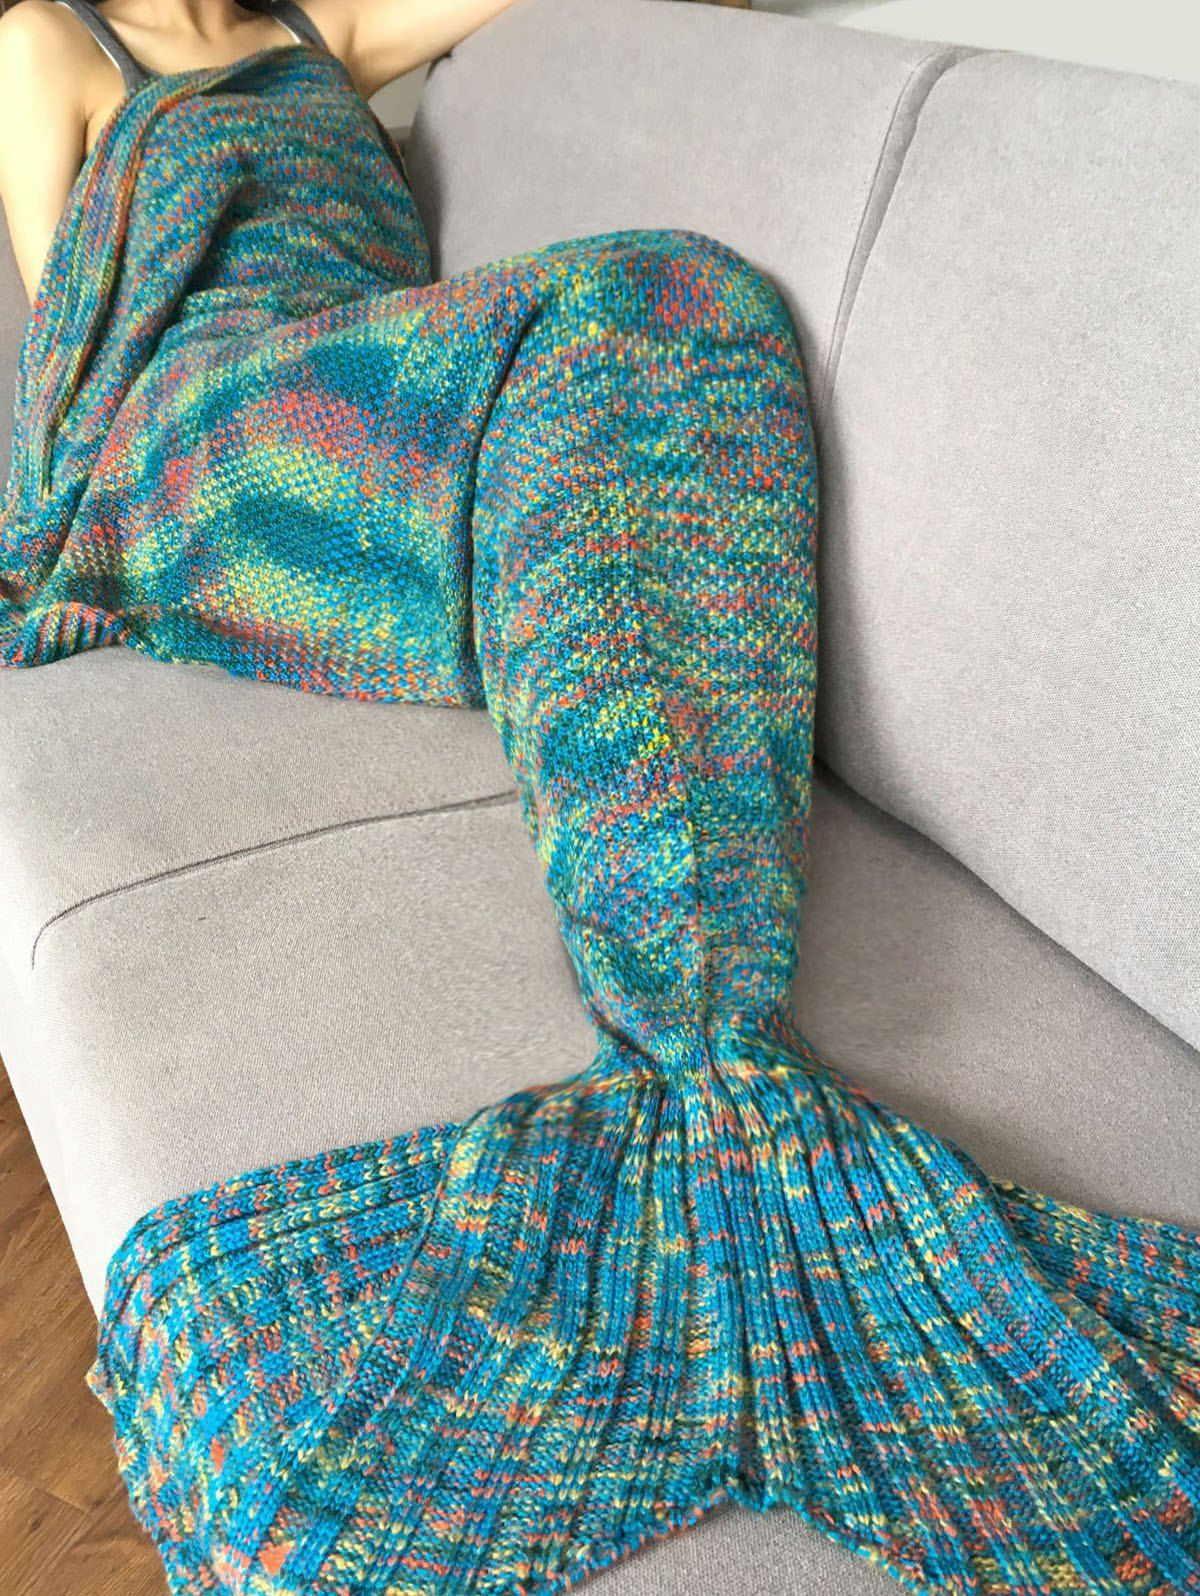 Lovely Stylish Crochet Knitted Super soft Mermaid Tail Shape Free Crochet Mermaid Tail Pattern for Adults Of Wonderful 48 Photos Free Crochet Mermaid Tail Pattern for Adults